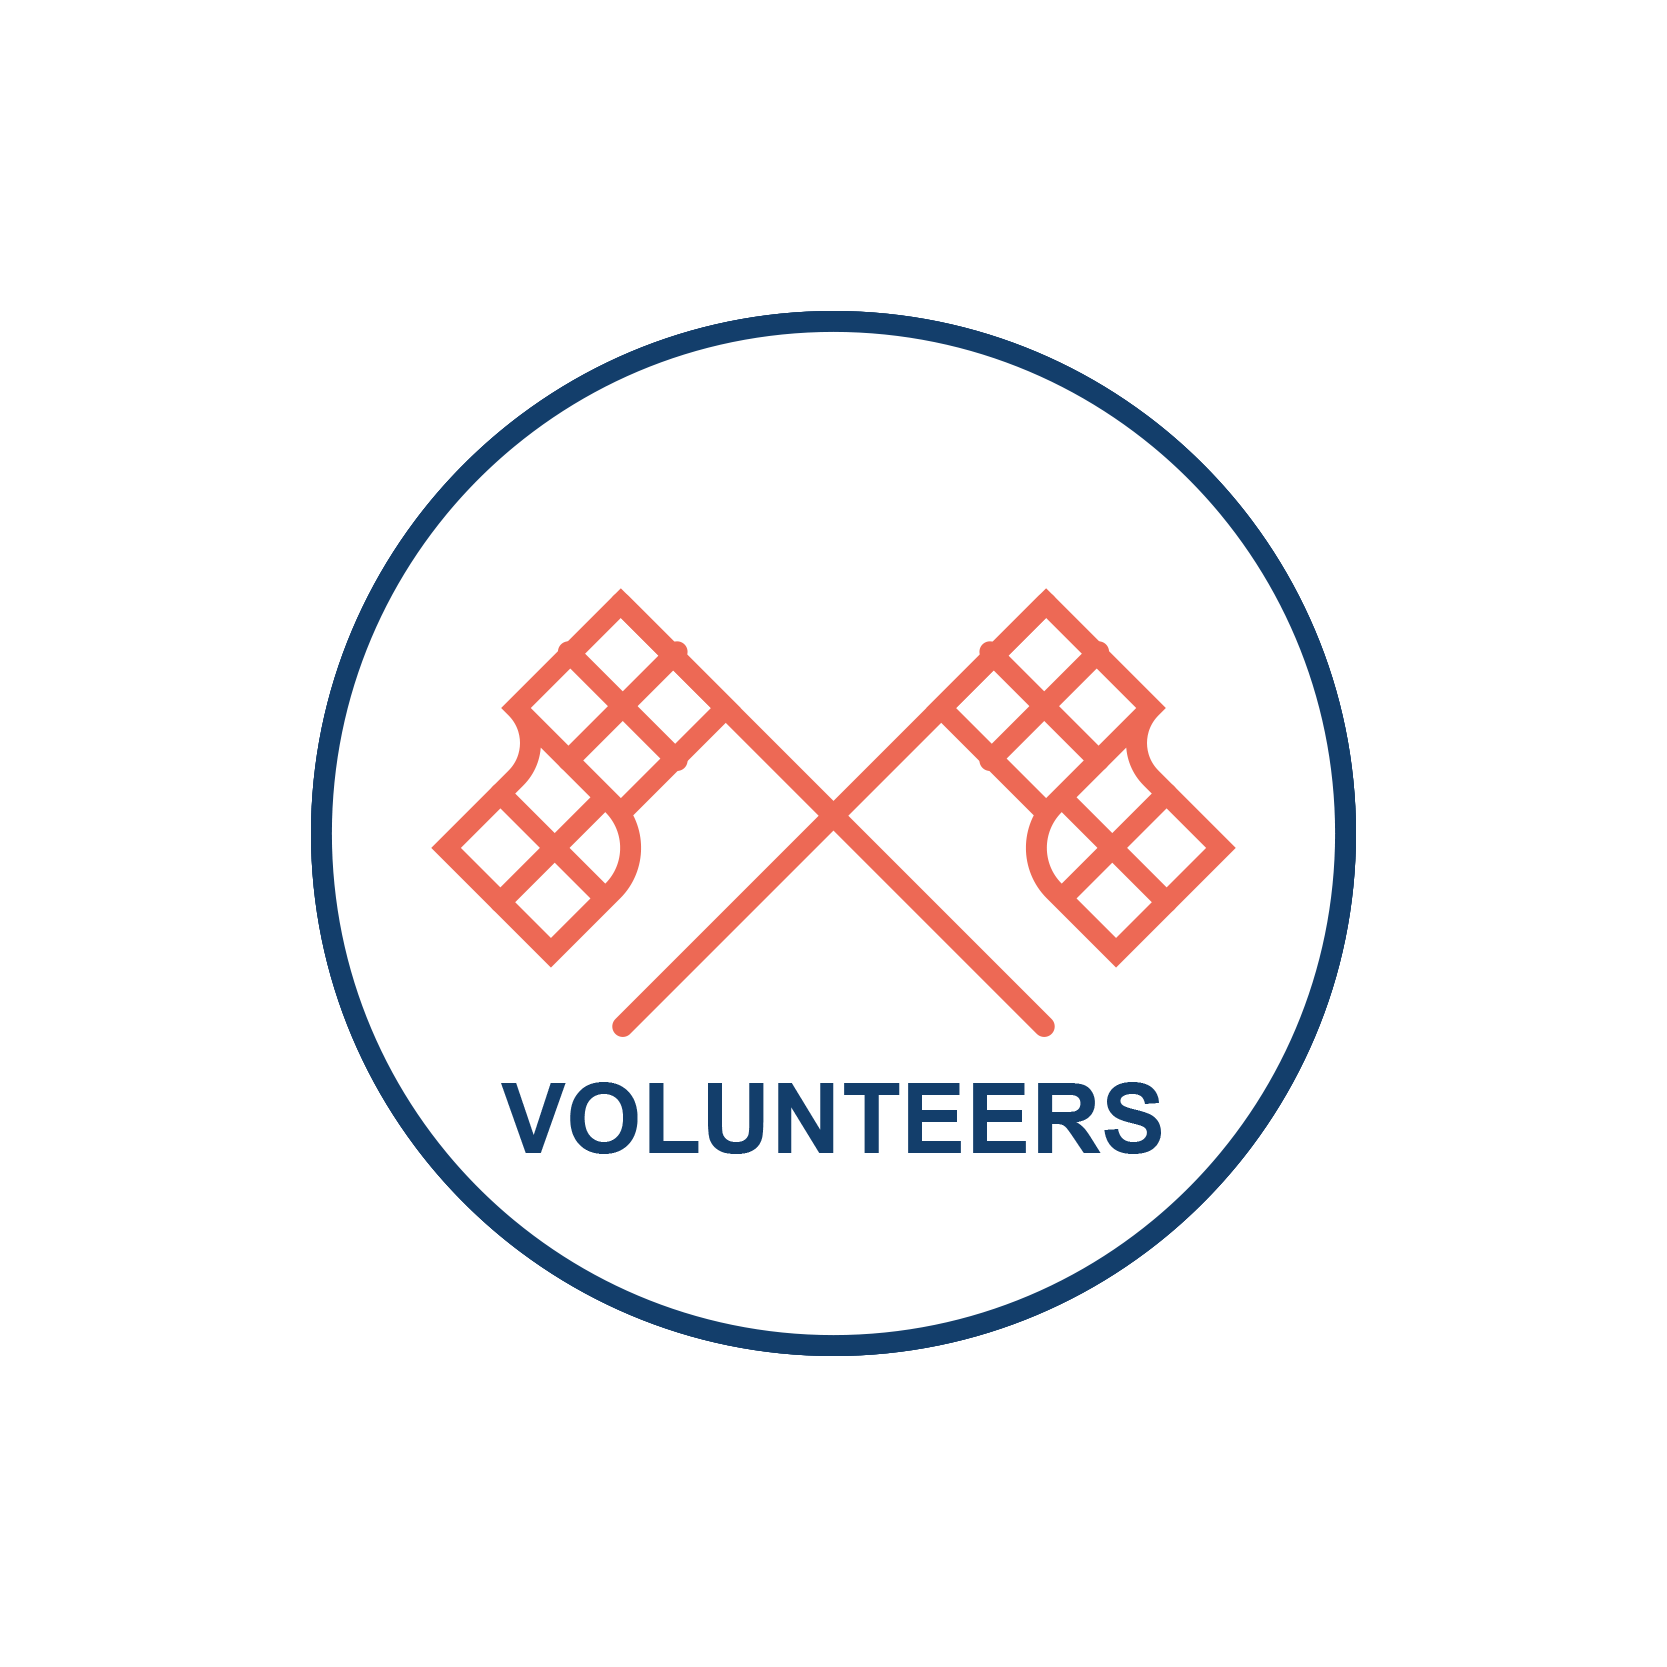 vol-icon.png